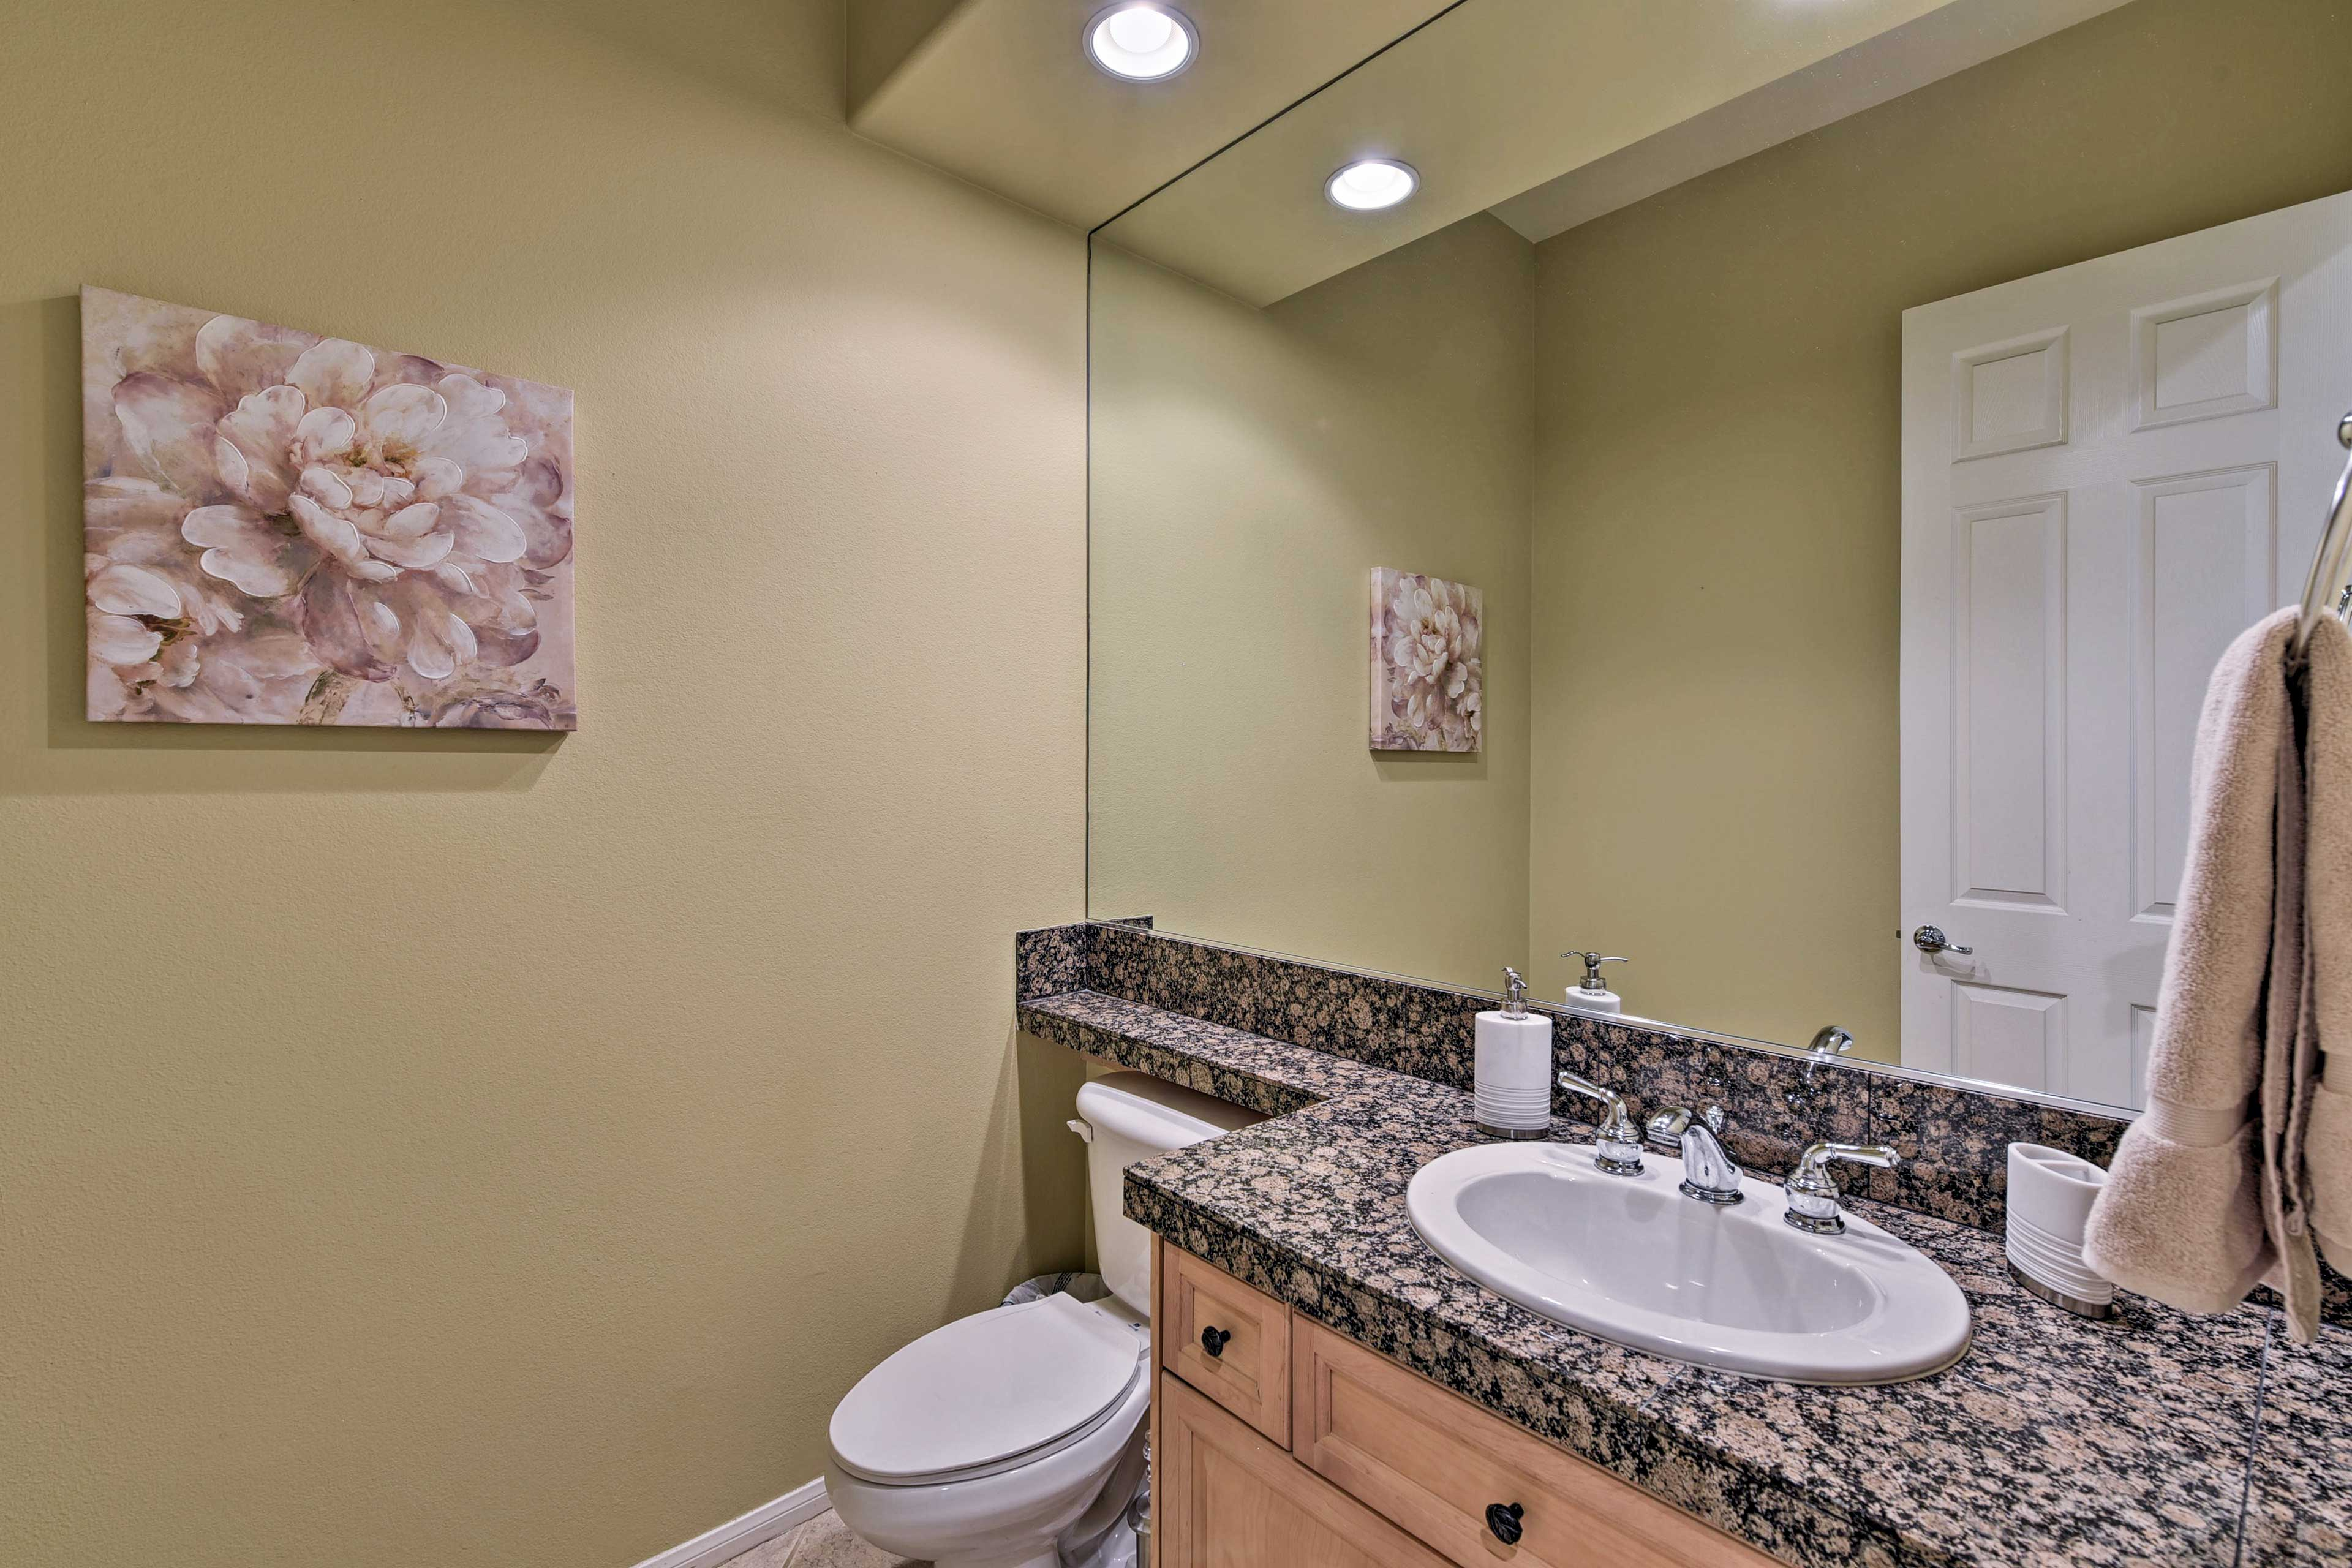 This bathroom is perfect to get ready for a night out!